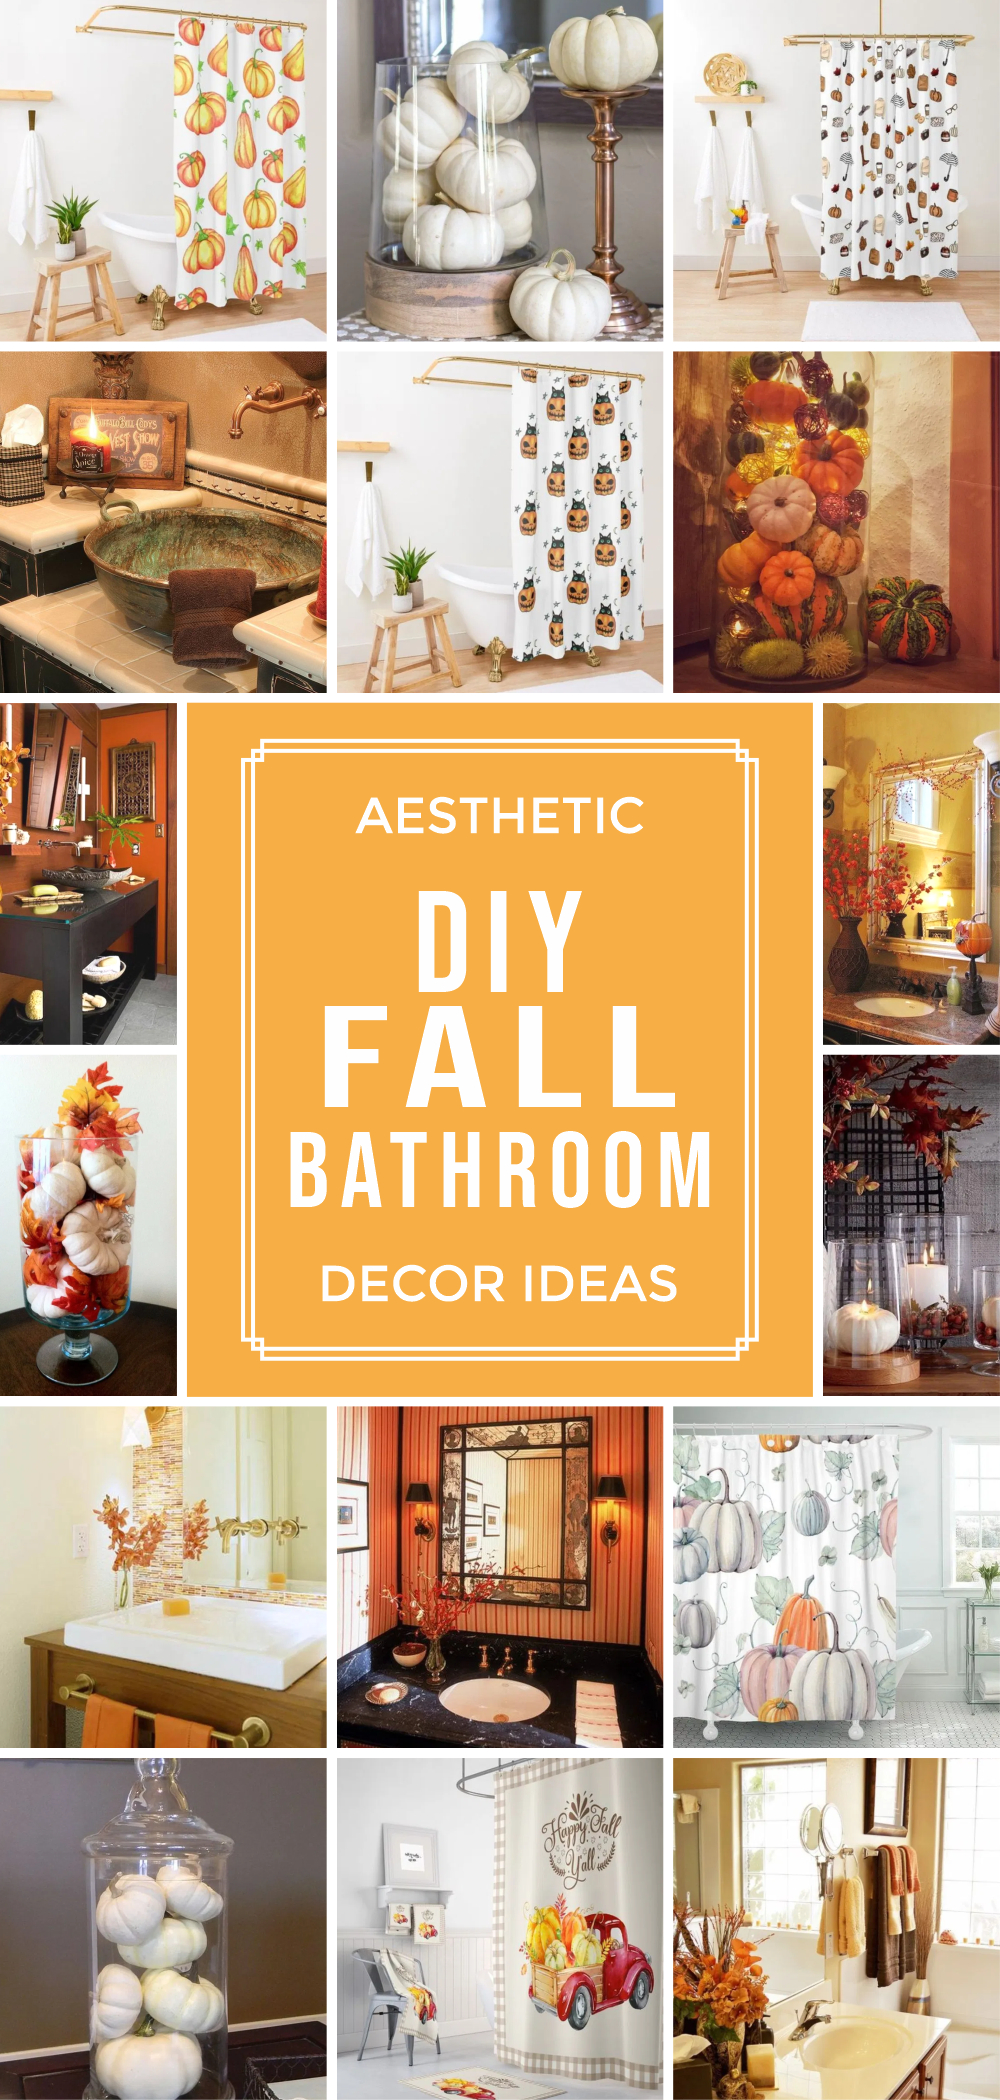 Aesthetic diy fall bathroom decor ideas 1